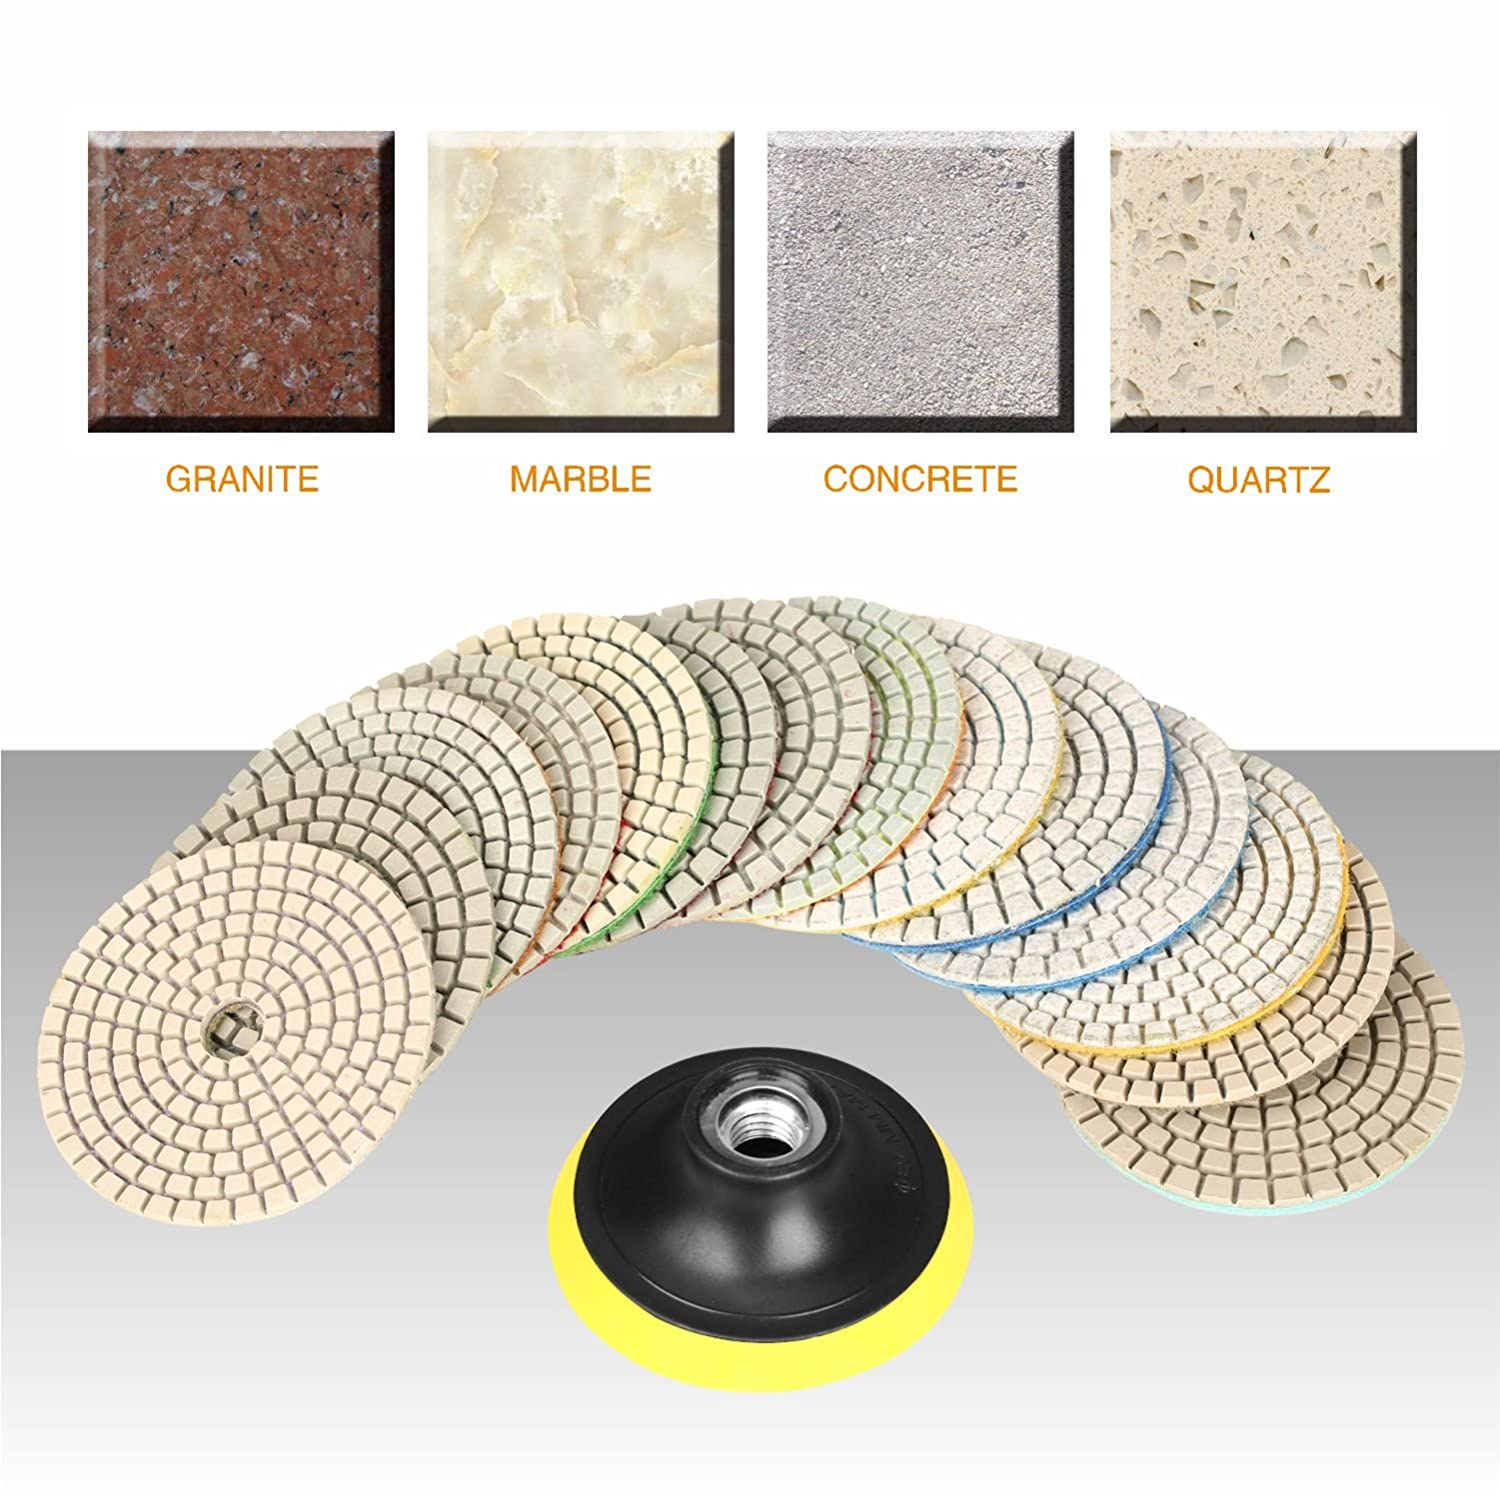 50#-6000# with Hook /& Loop Backing Holder Pads for Wet Polisher SPTA 15pcs Diamond Wet Polishing Pads Set 4 inch Pads for Granite Stone Concrete Marble Floor Grinder or Polisher